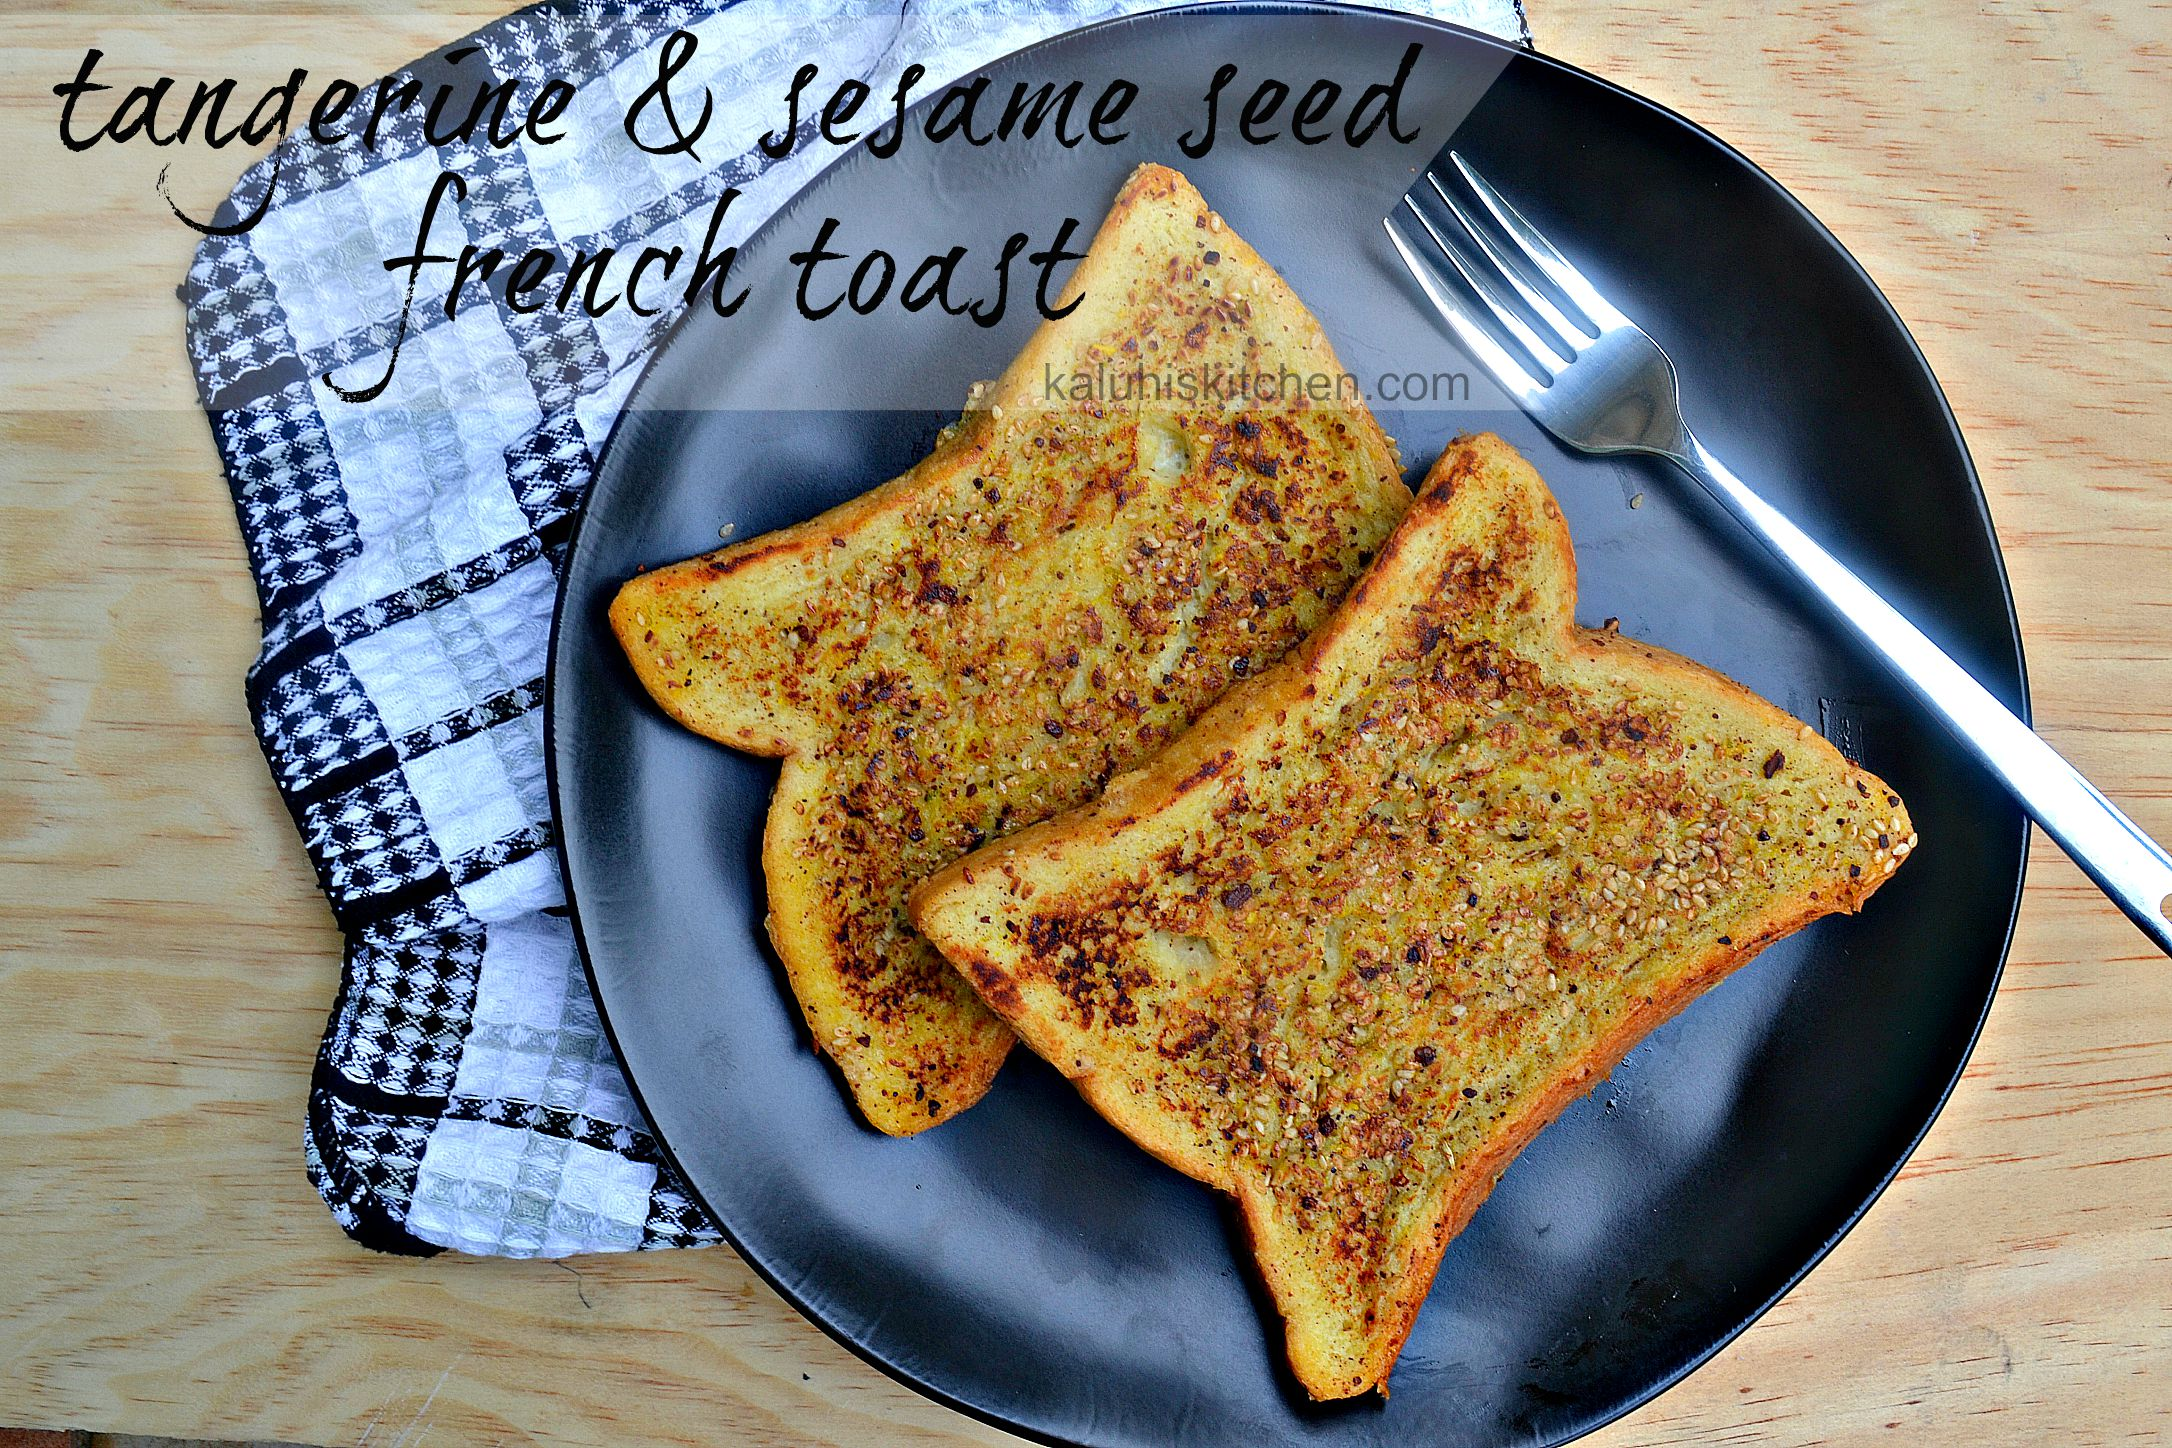 kaluhiskitchen.com_tangerine and sesame seed french toast_kenyan food bloggers_how to make french toast